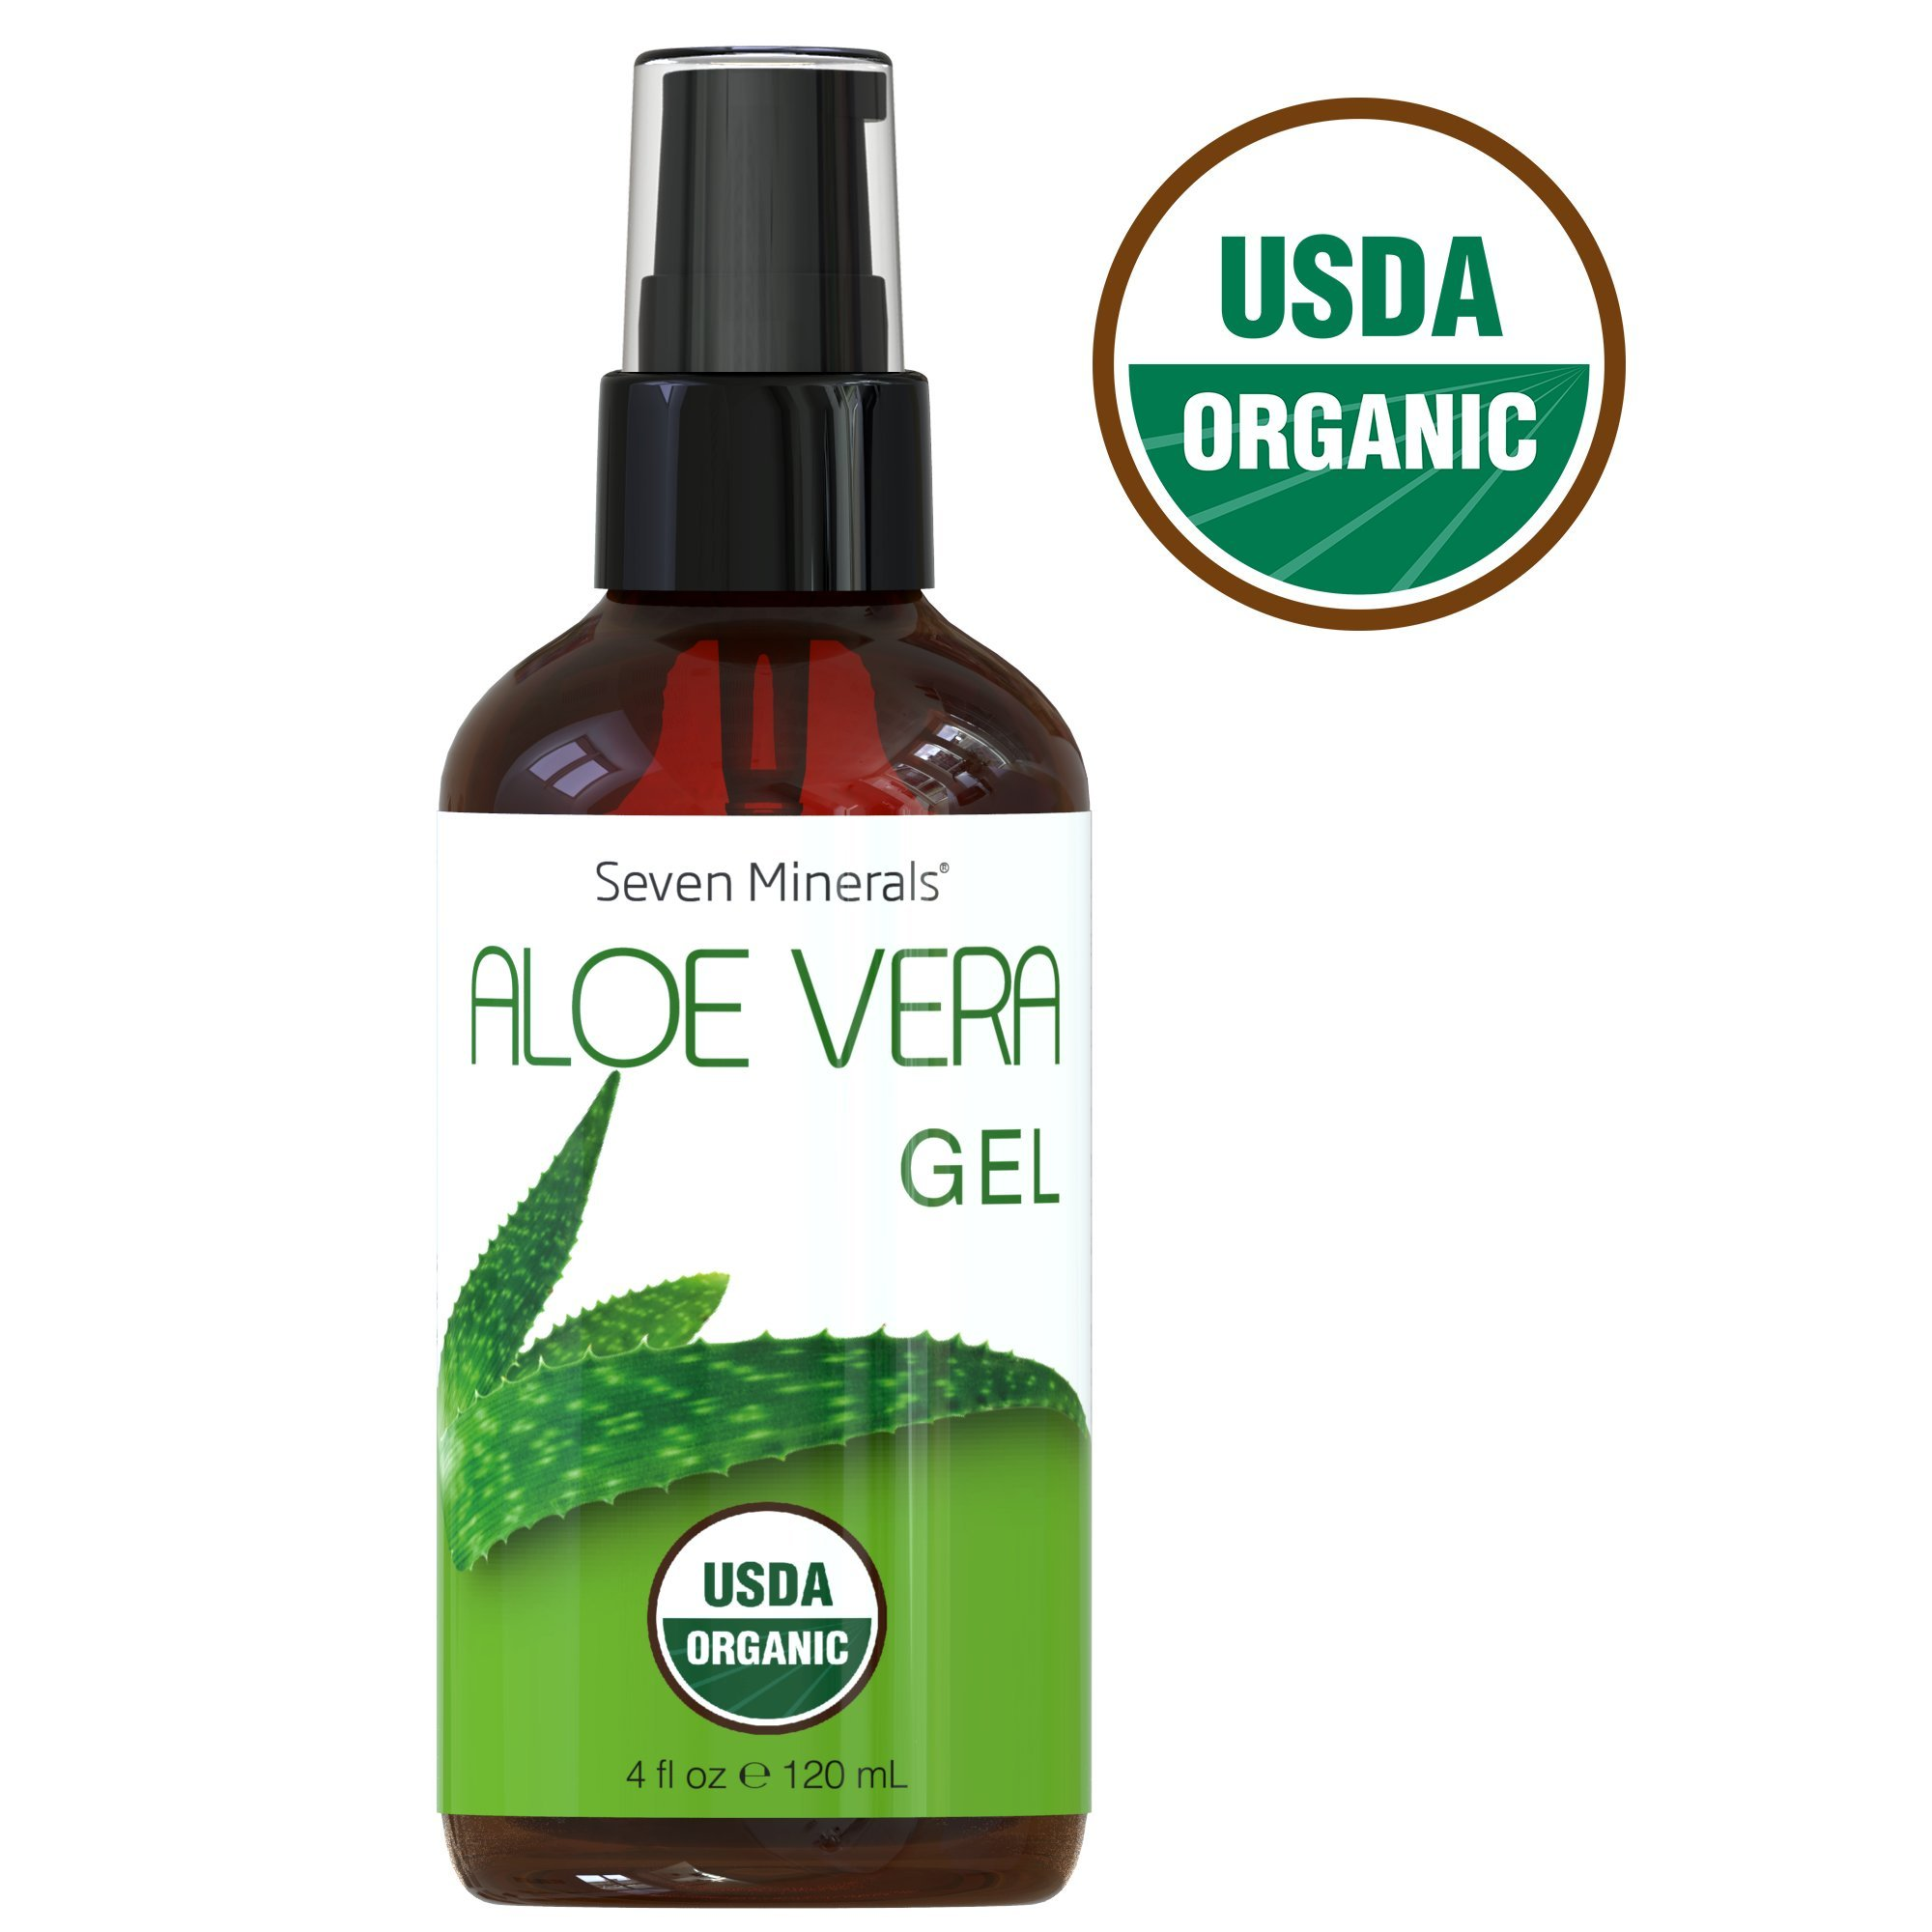 #1 USDA Organic Aloe Vera Gel by Seven Minerals – 100% Pure Organic Aloe, With No Toxic Chemicals Or Preservatives – For Healthy Skin, Hair, And After Sun Relief - 4 fl oz by Seven Minerals (Image #1)